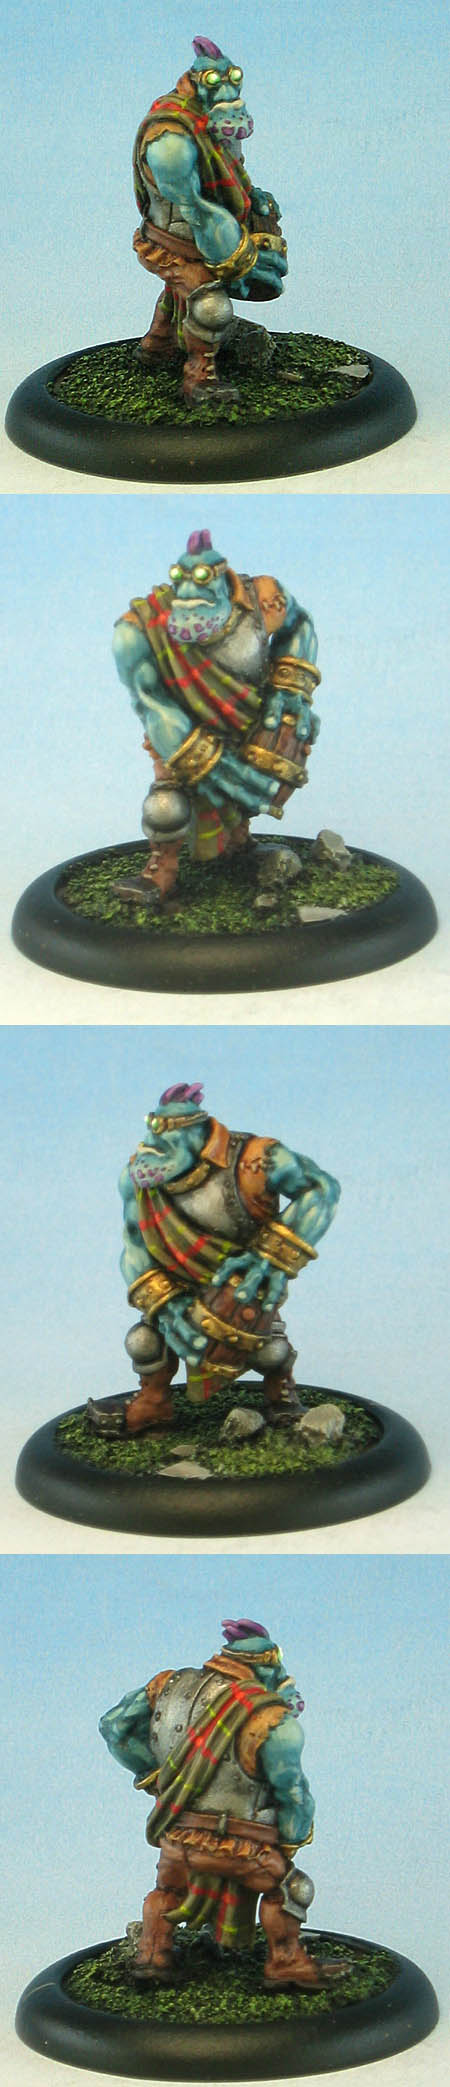 Trollblood Thumper Crew - Crewman with Powder